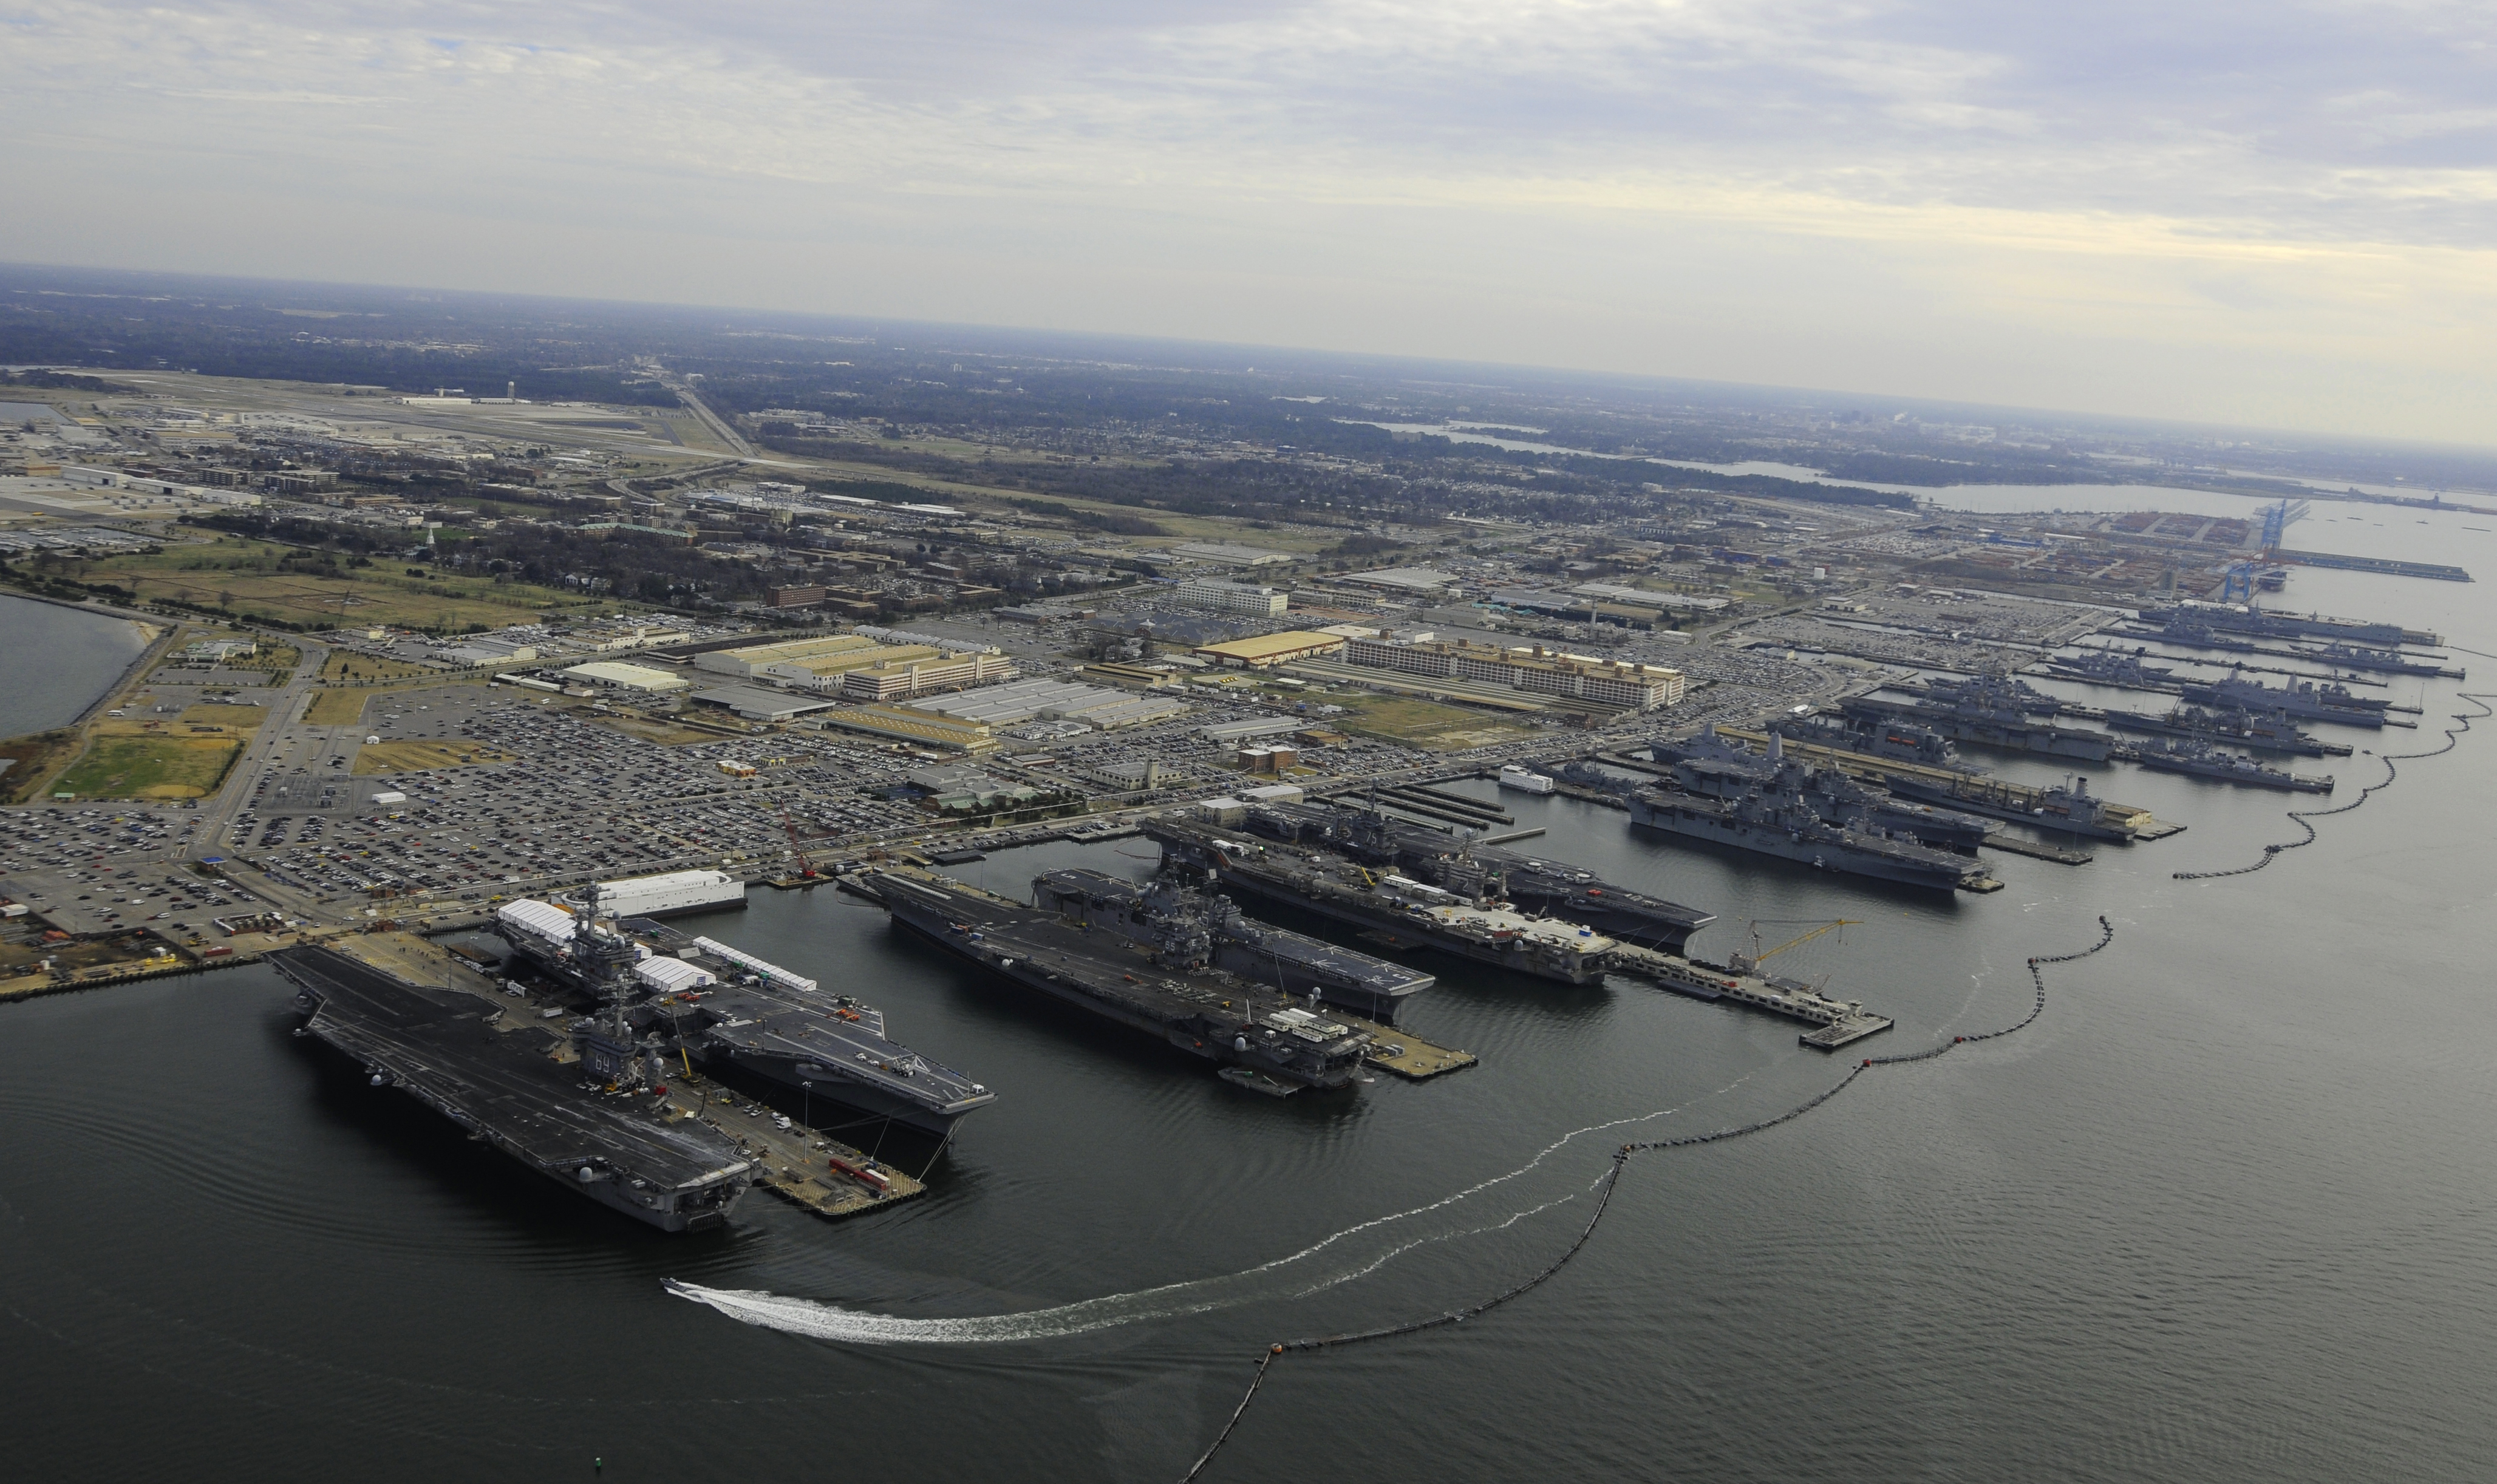 (CVN 69), USS George H.W. Bush (CVN 77), USS Enterprise (CVN